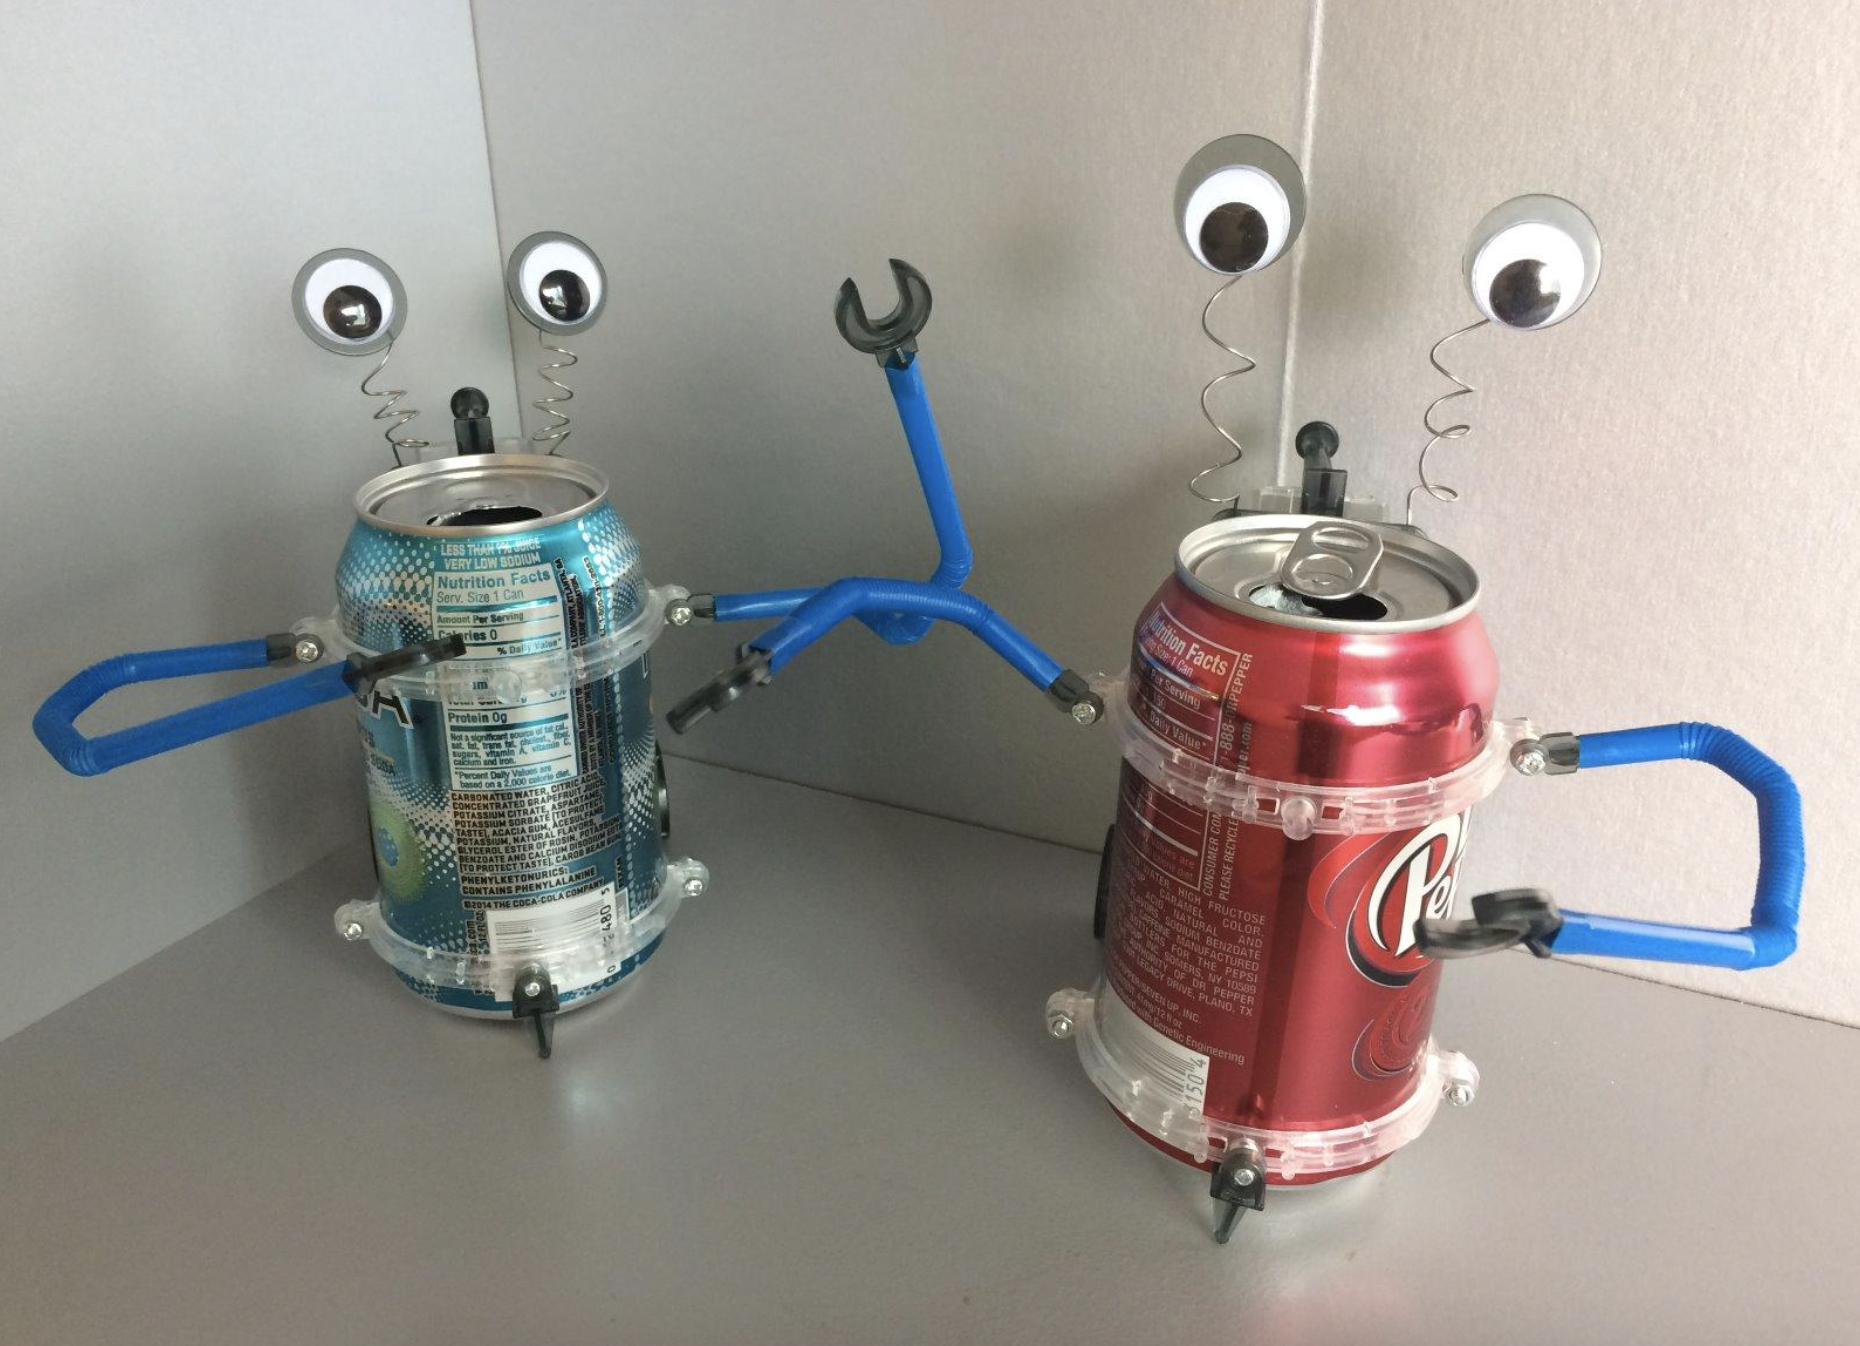 reviewer images of two cans turned into robots